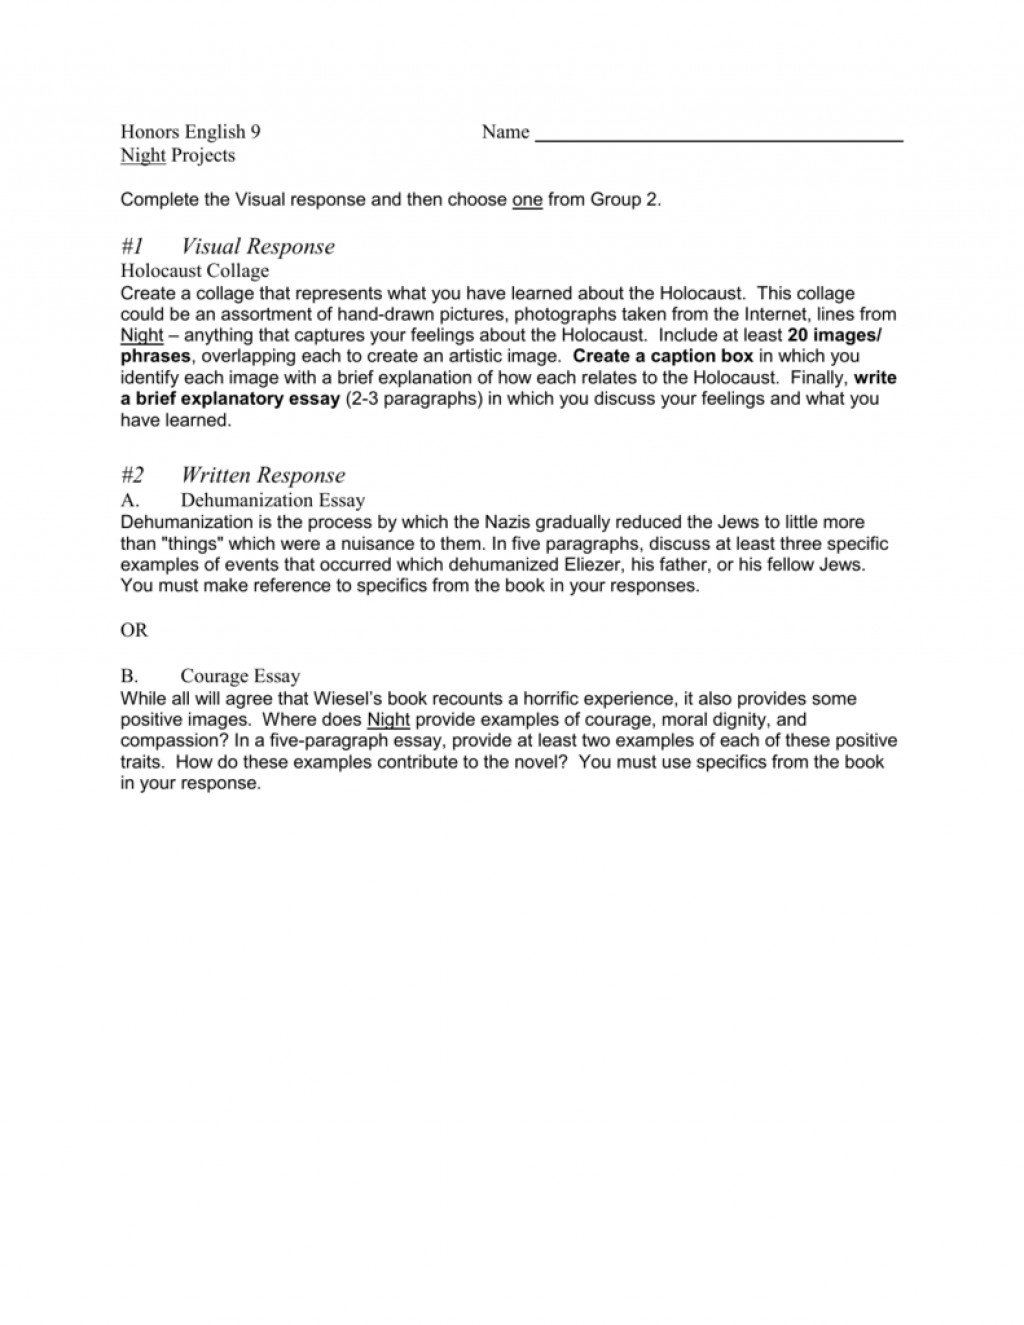 003 Essay Example Dehumanization In Night 008501396 1 Remarkable Conclusion Large